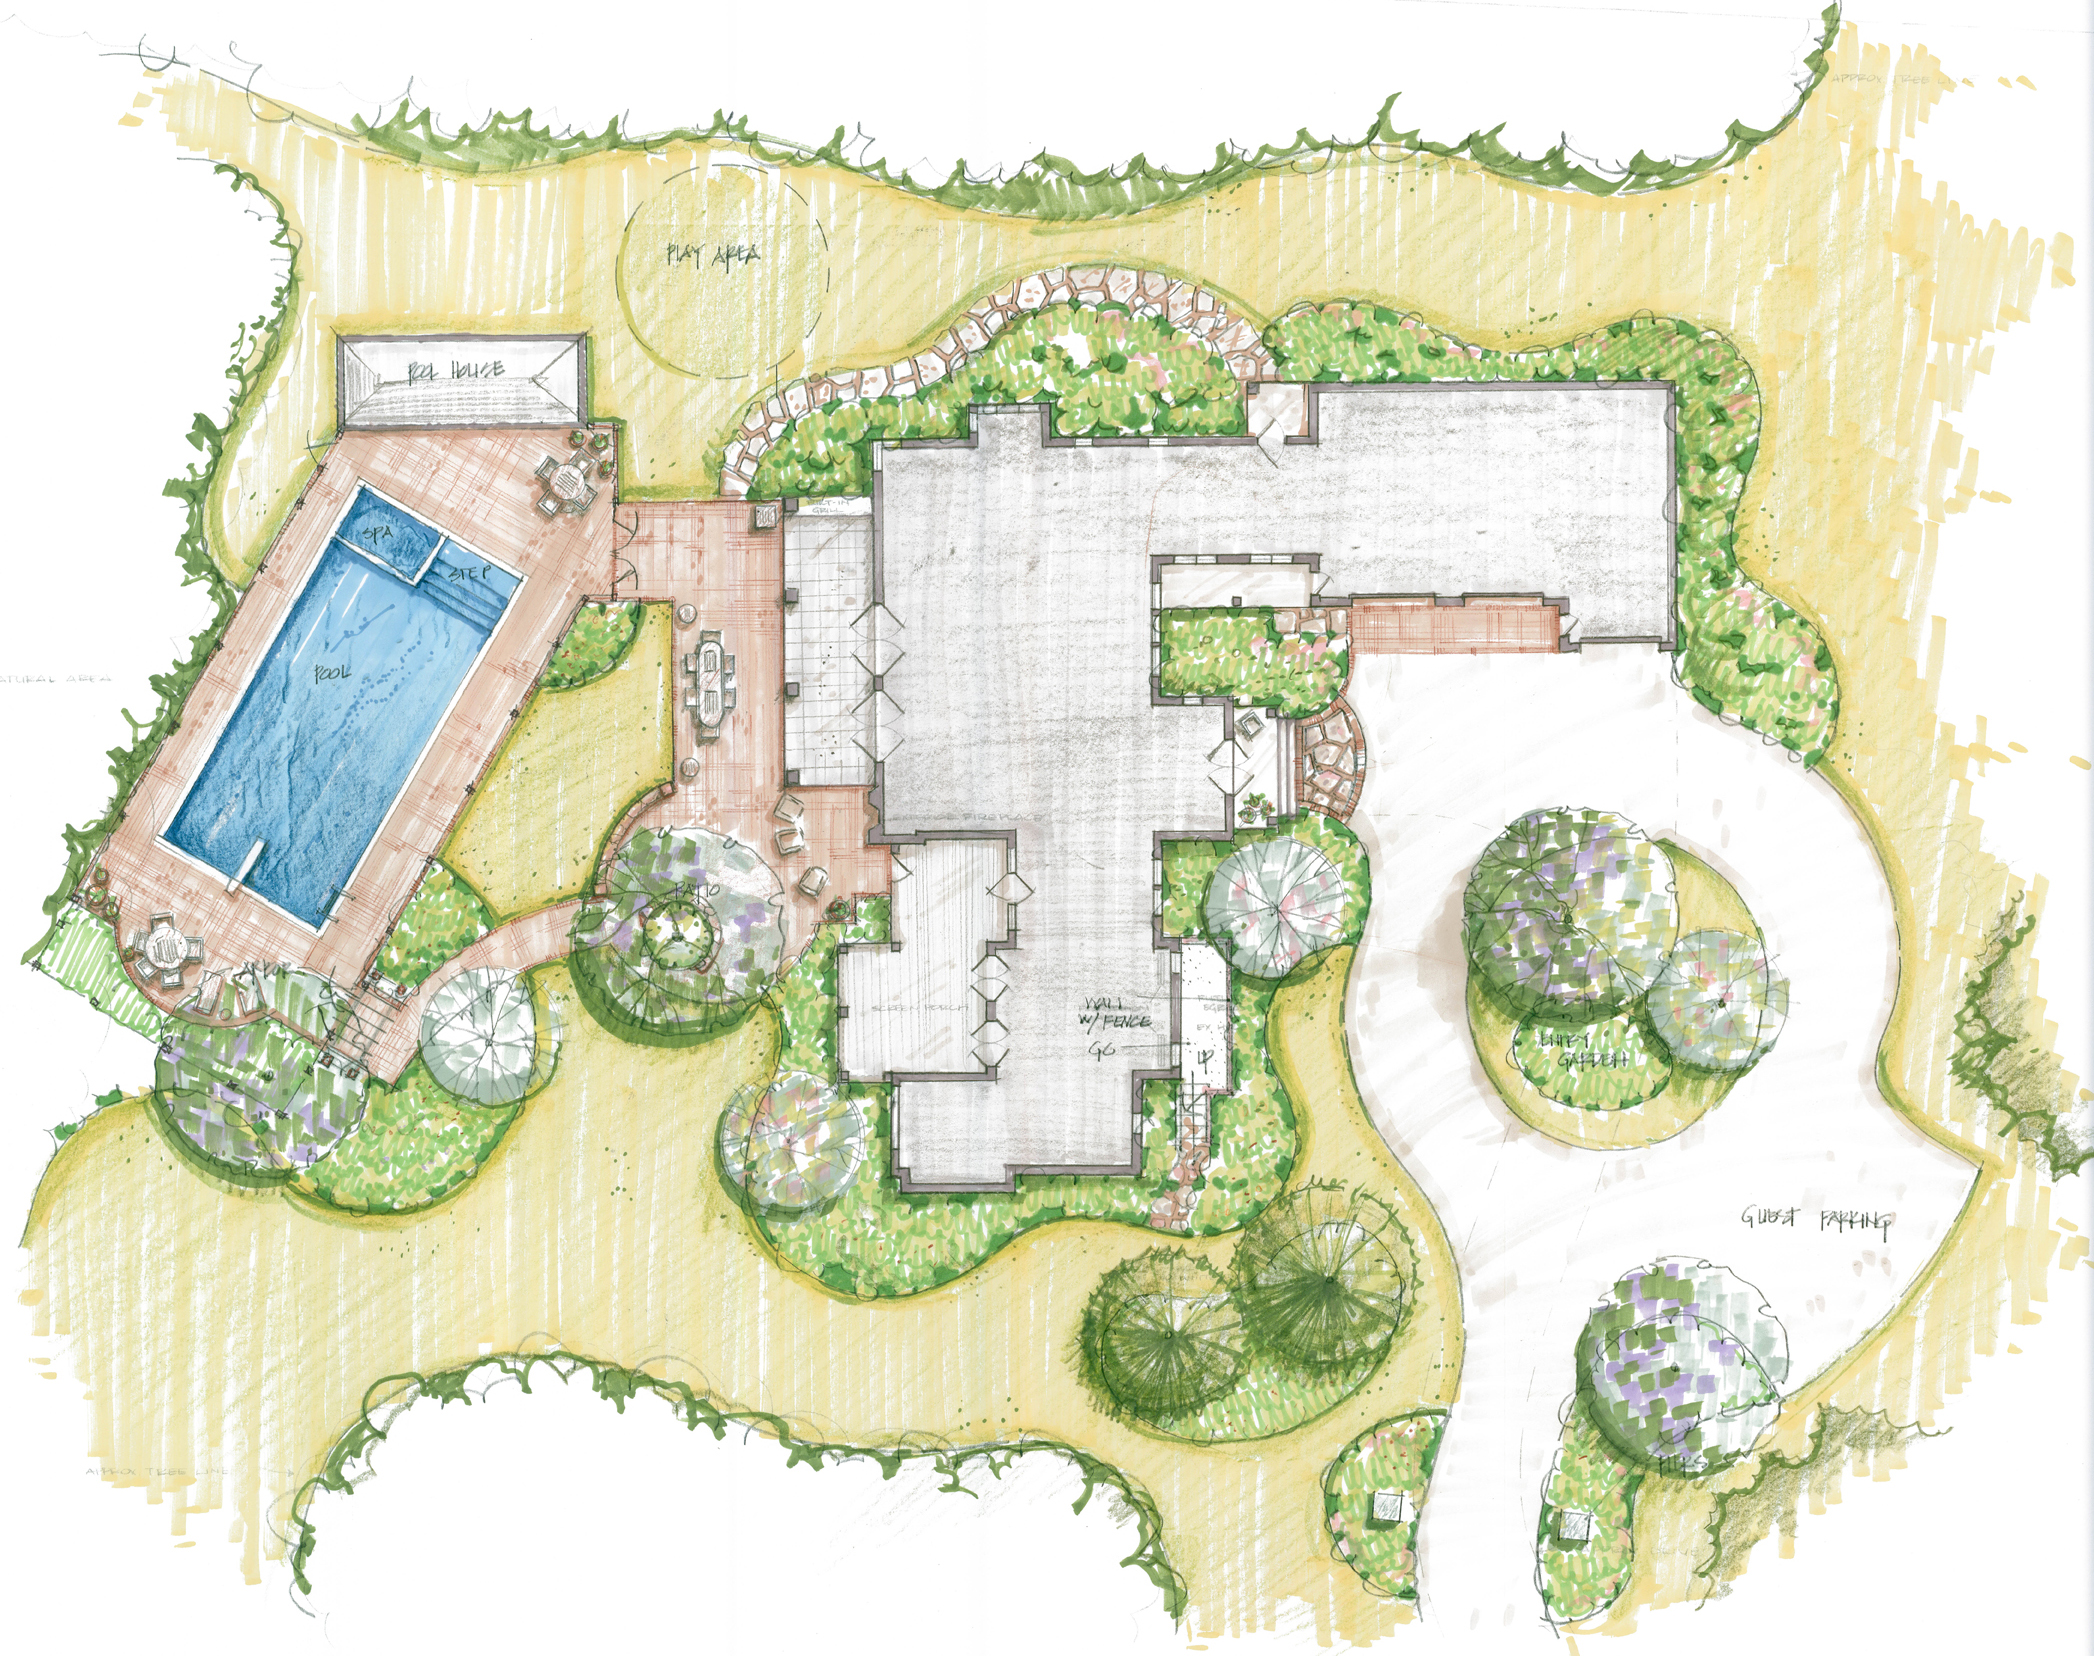 5 simple reasons to plan your landscape design landscape for Garden design plans